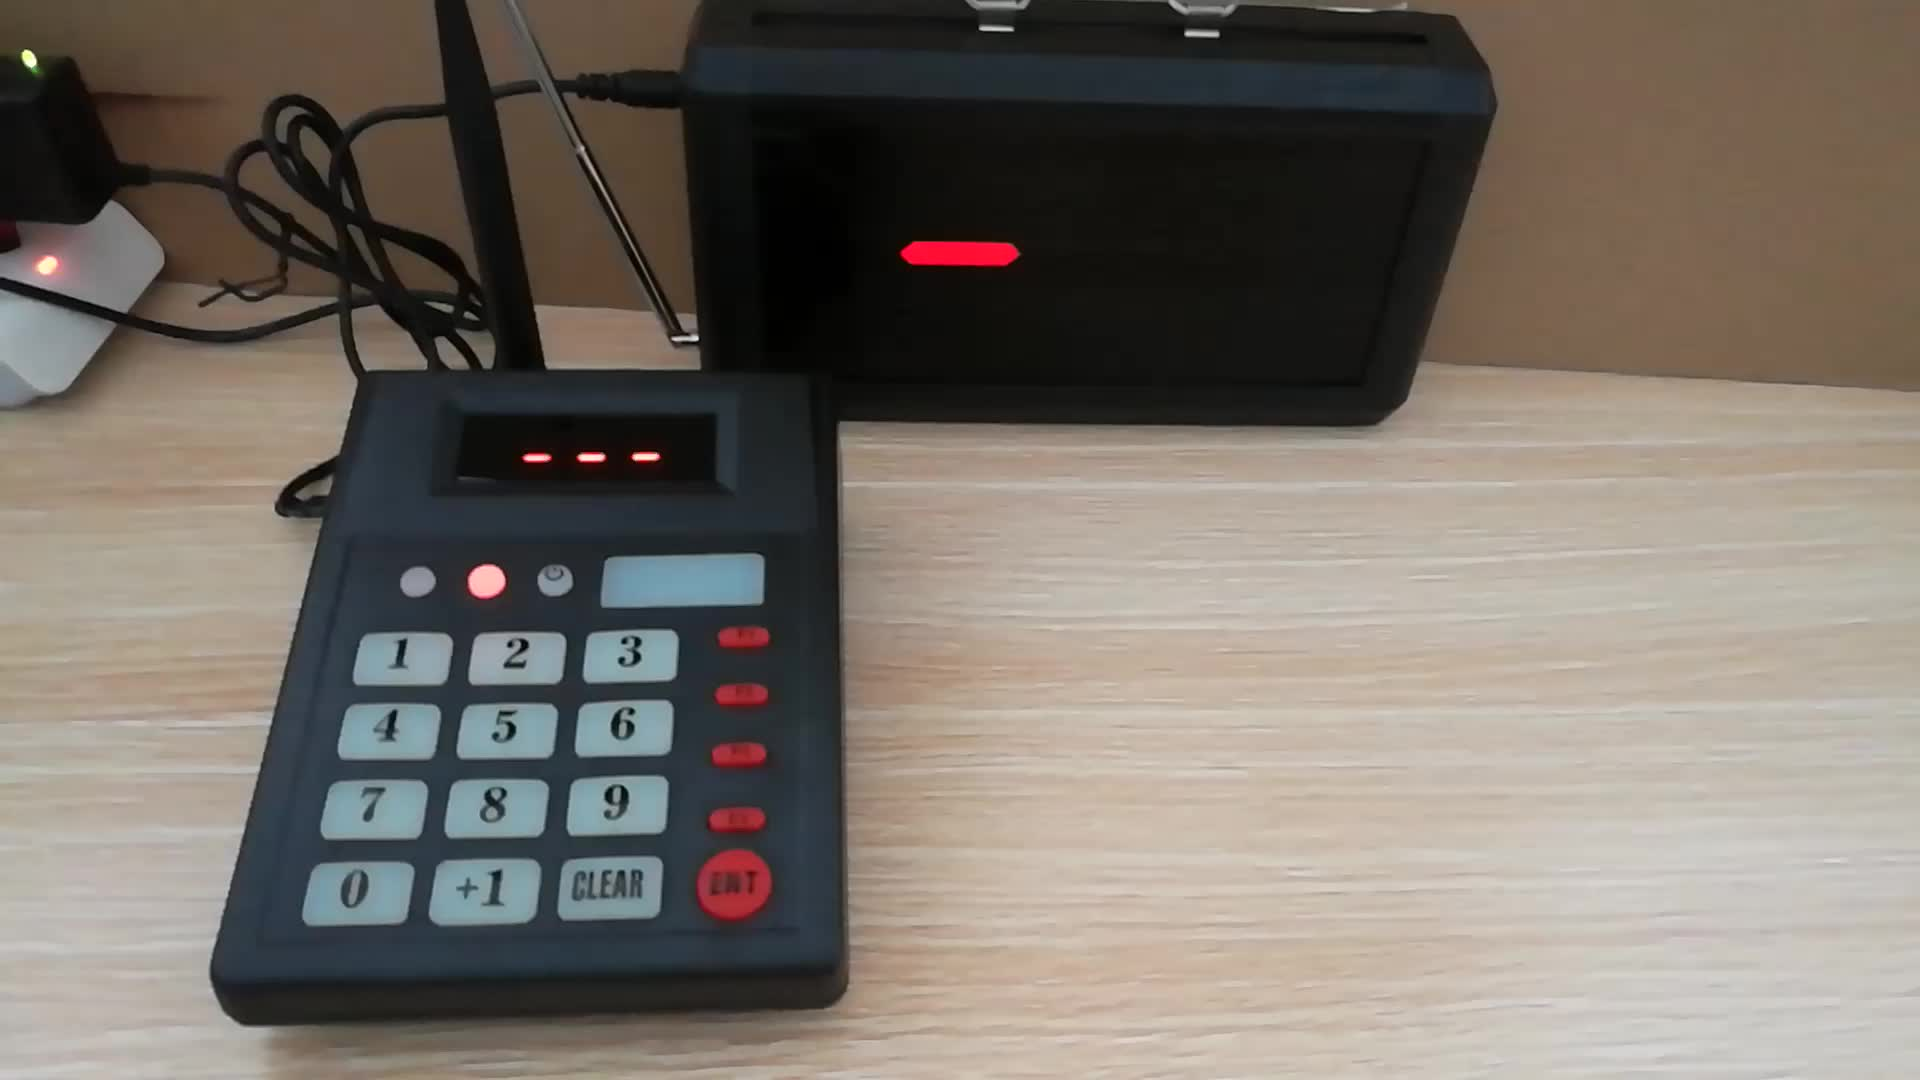 Led Display Numerical Wireless Queue Management System Ticket Dispenser